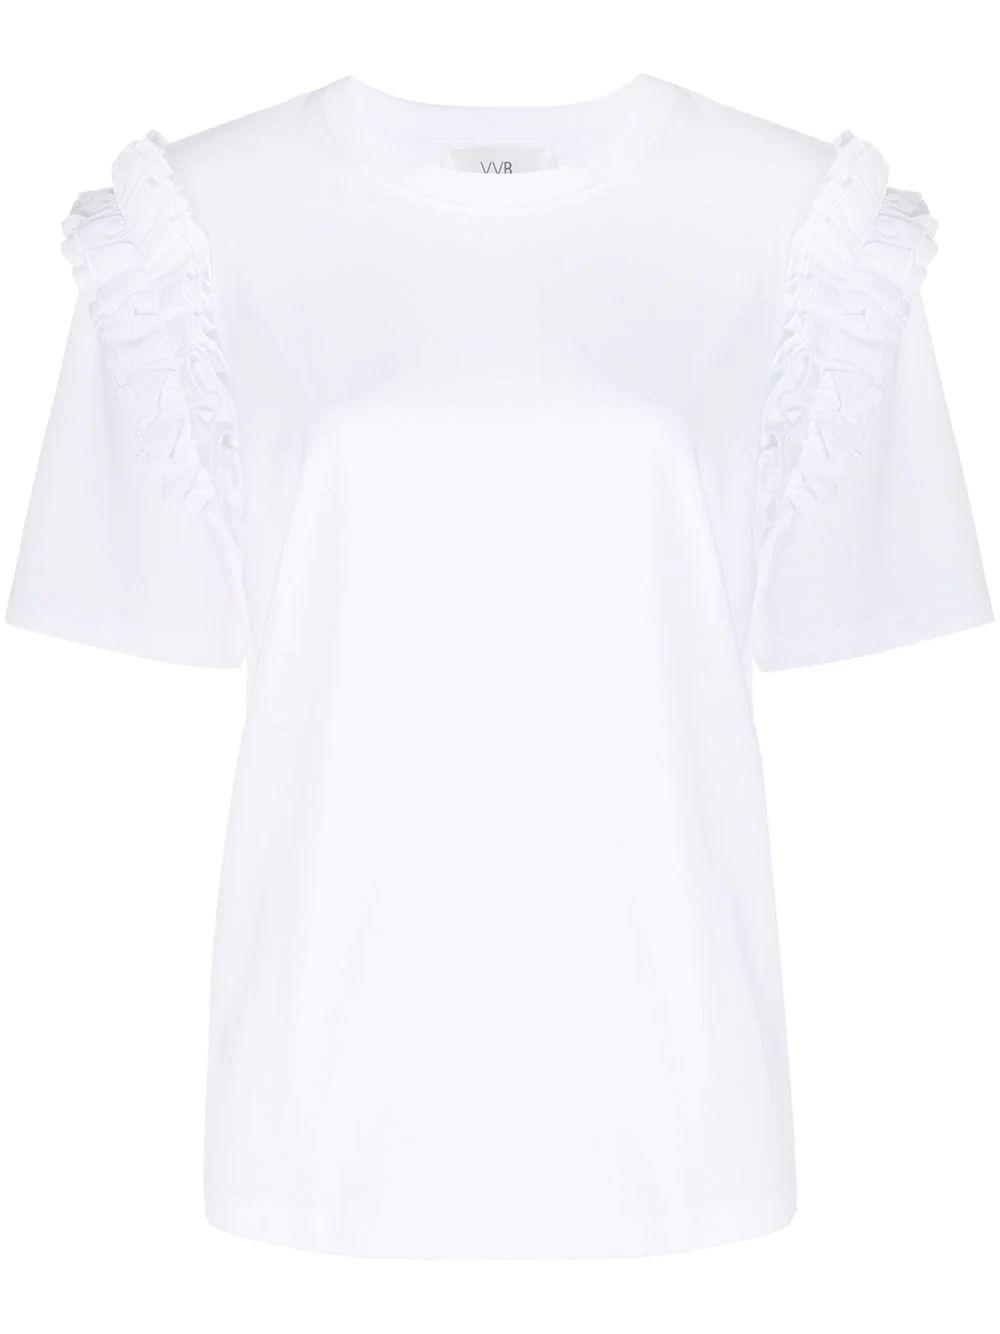 Ruffle Trim T- Shirt Item # 2320JTS001774A